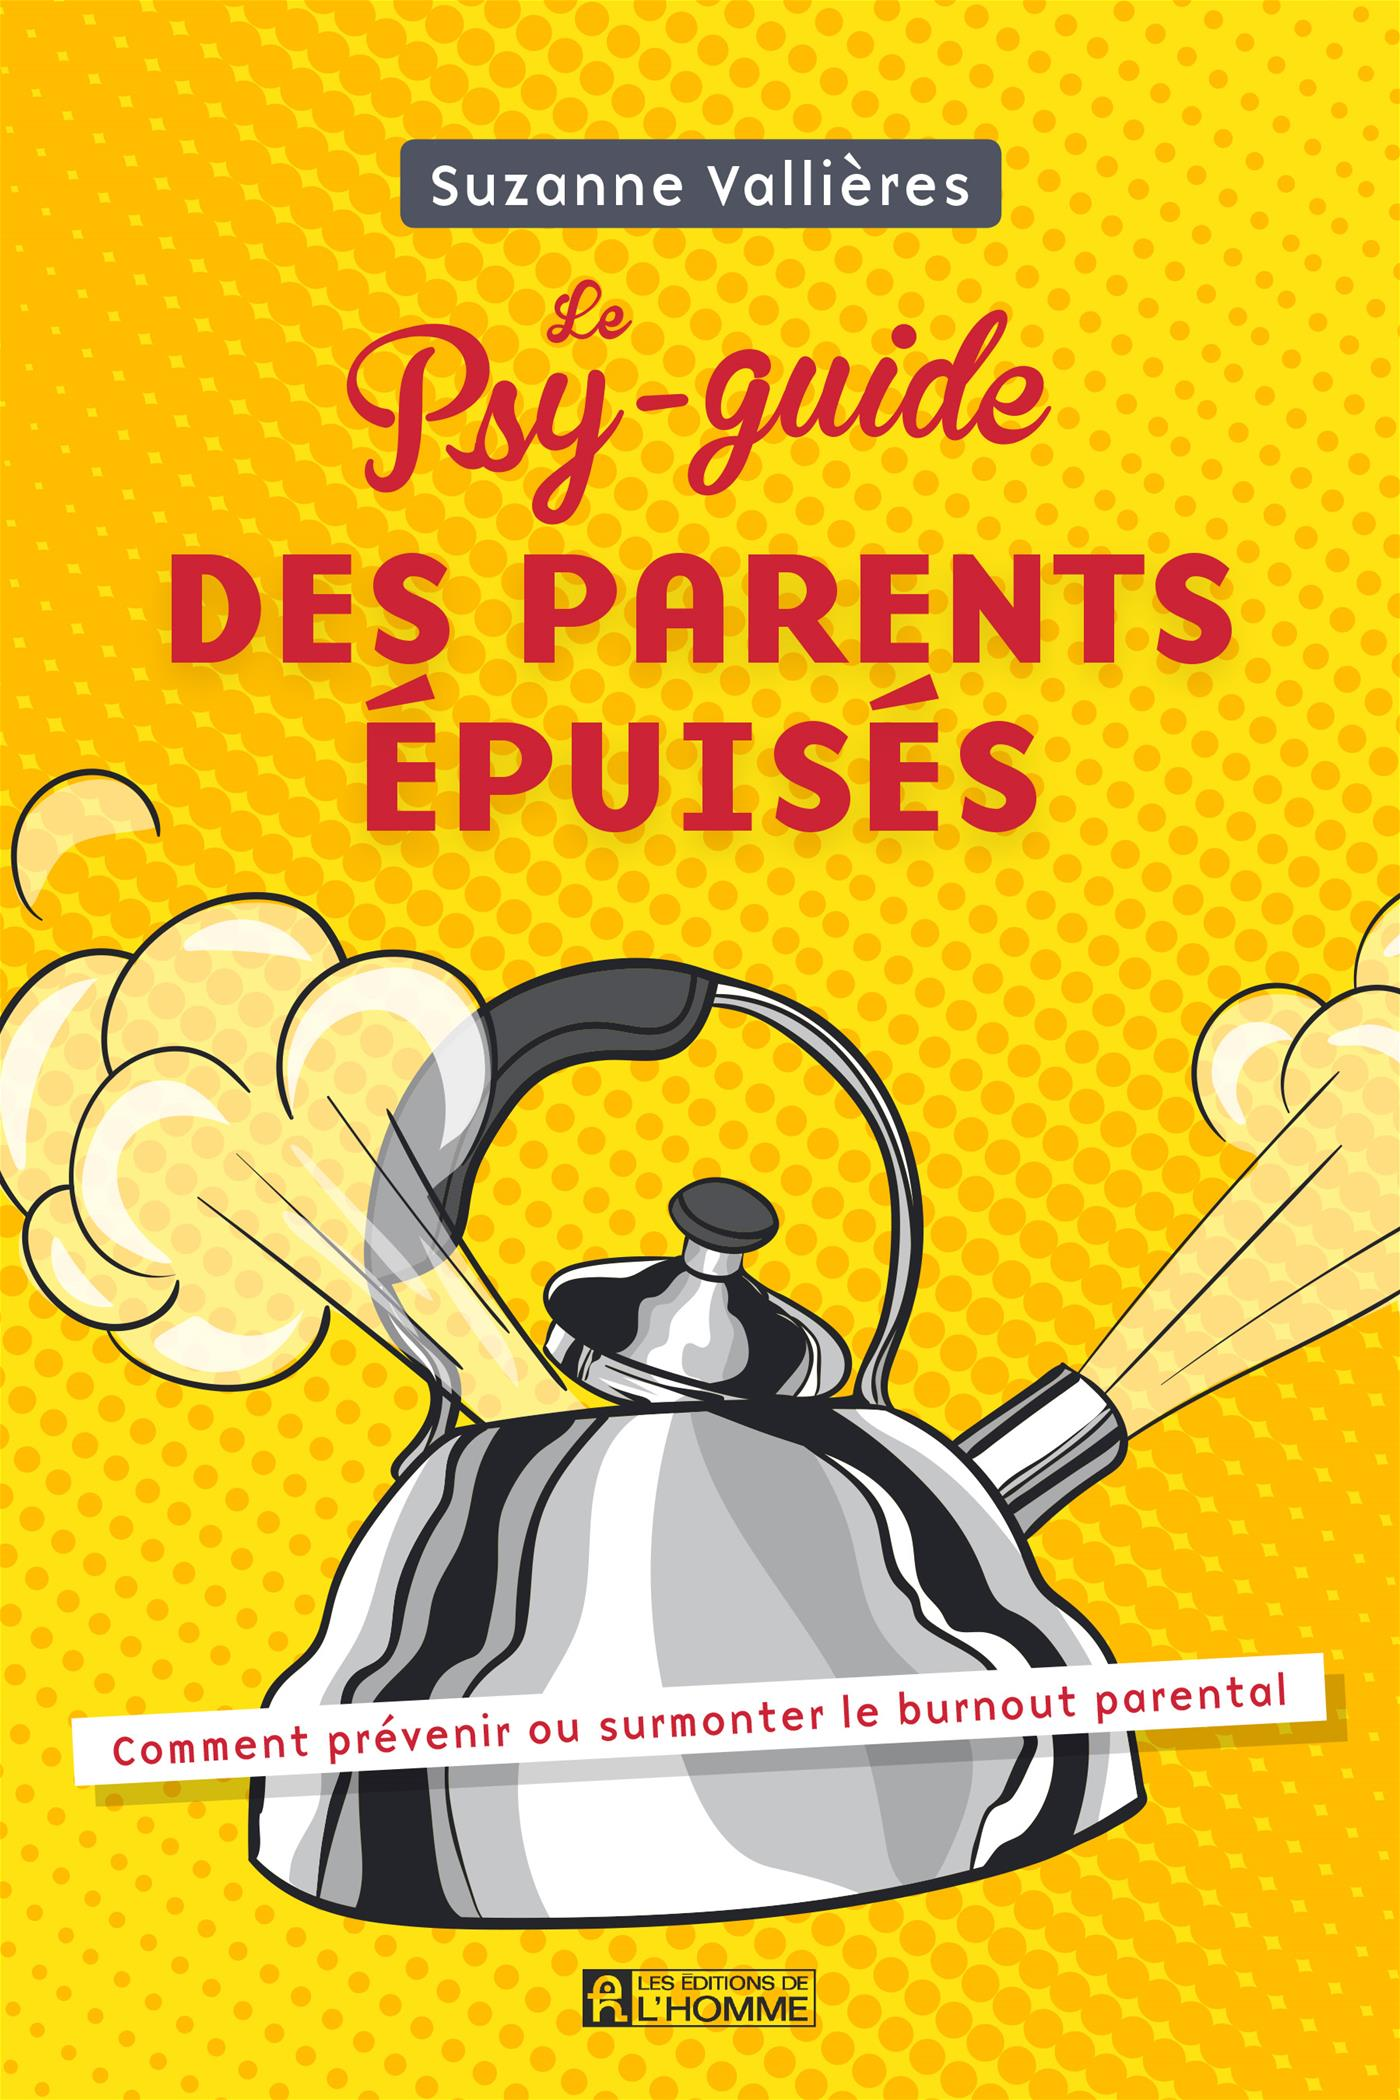 psy-guide des parents épuisés